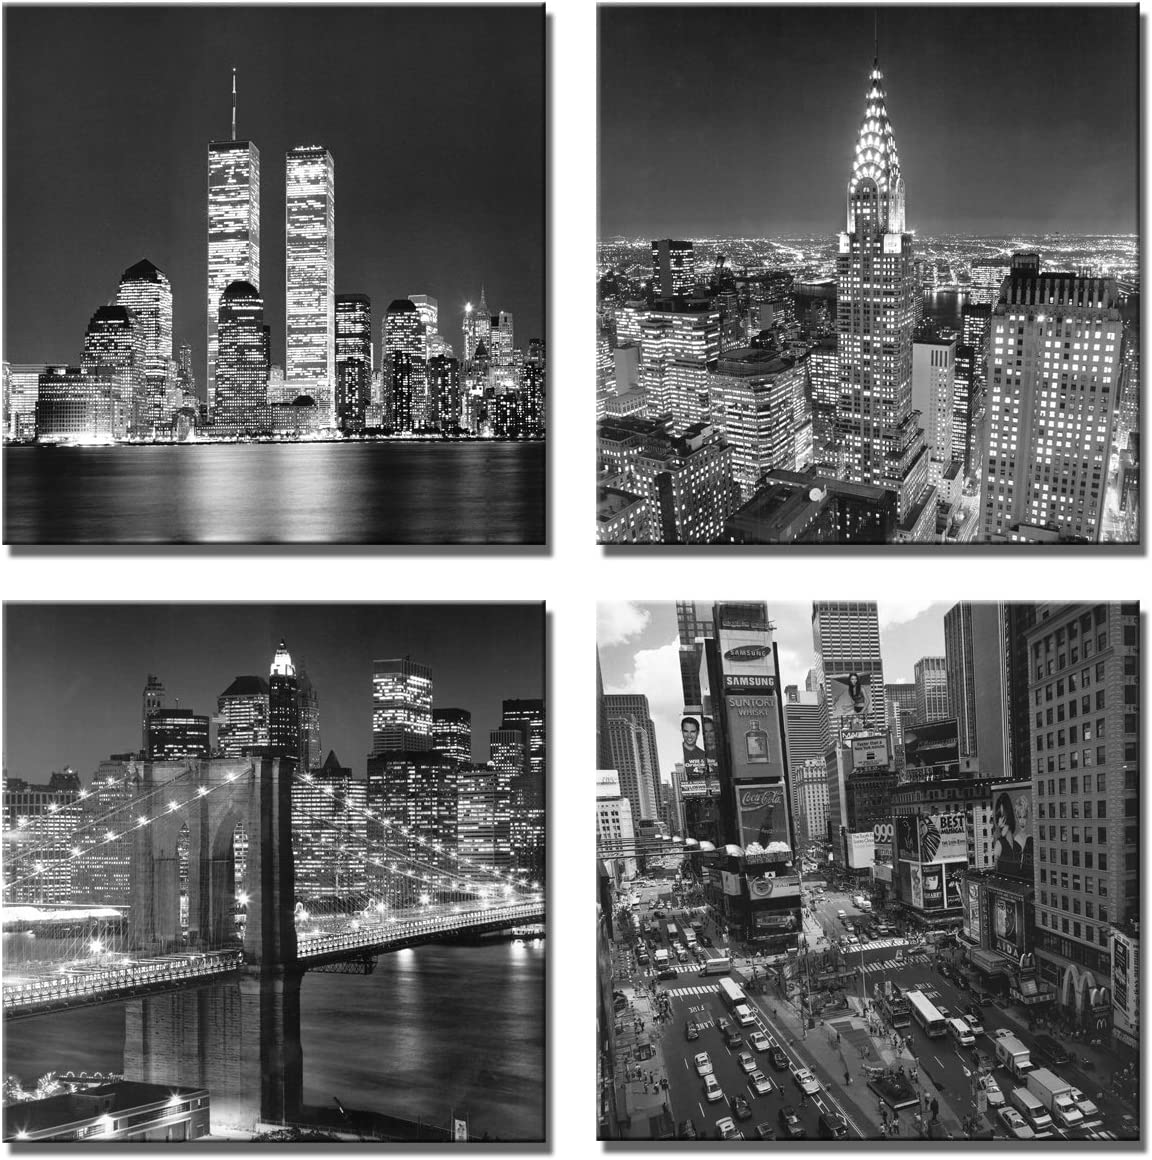 New York City Canvas Wall Art Print Black And White Brooklyn Bridge Empire State Building Wall Art Modern Giclee Artwork For Office Home Decor 12x 12 Inch Posters Prints